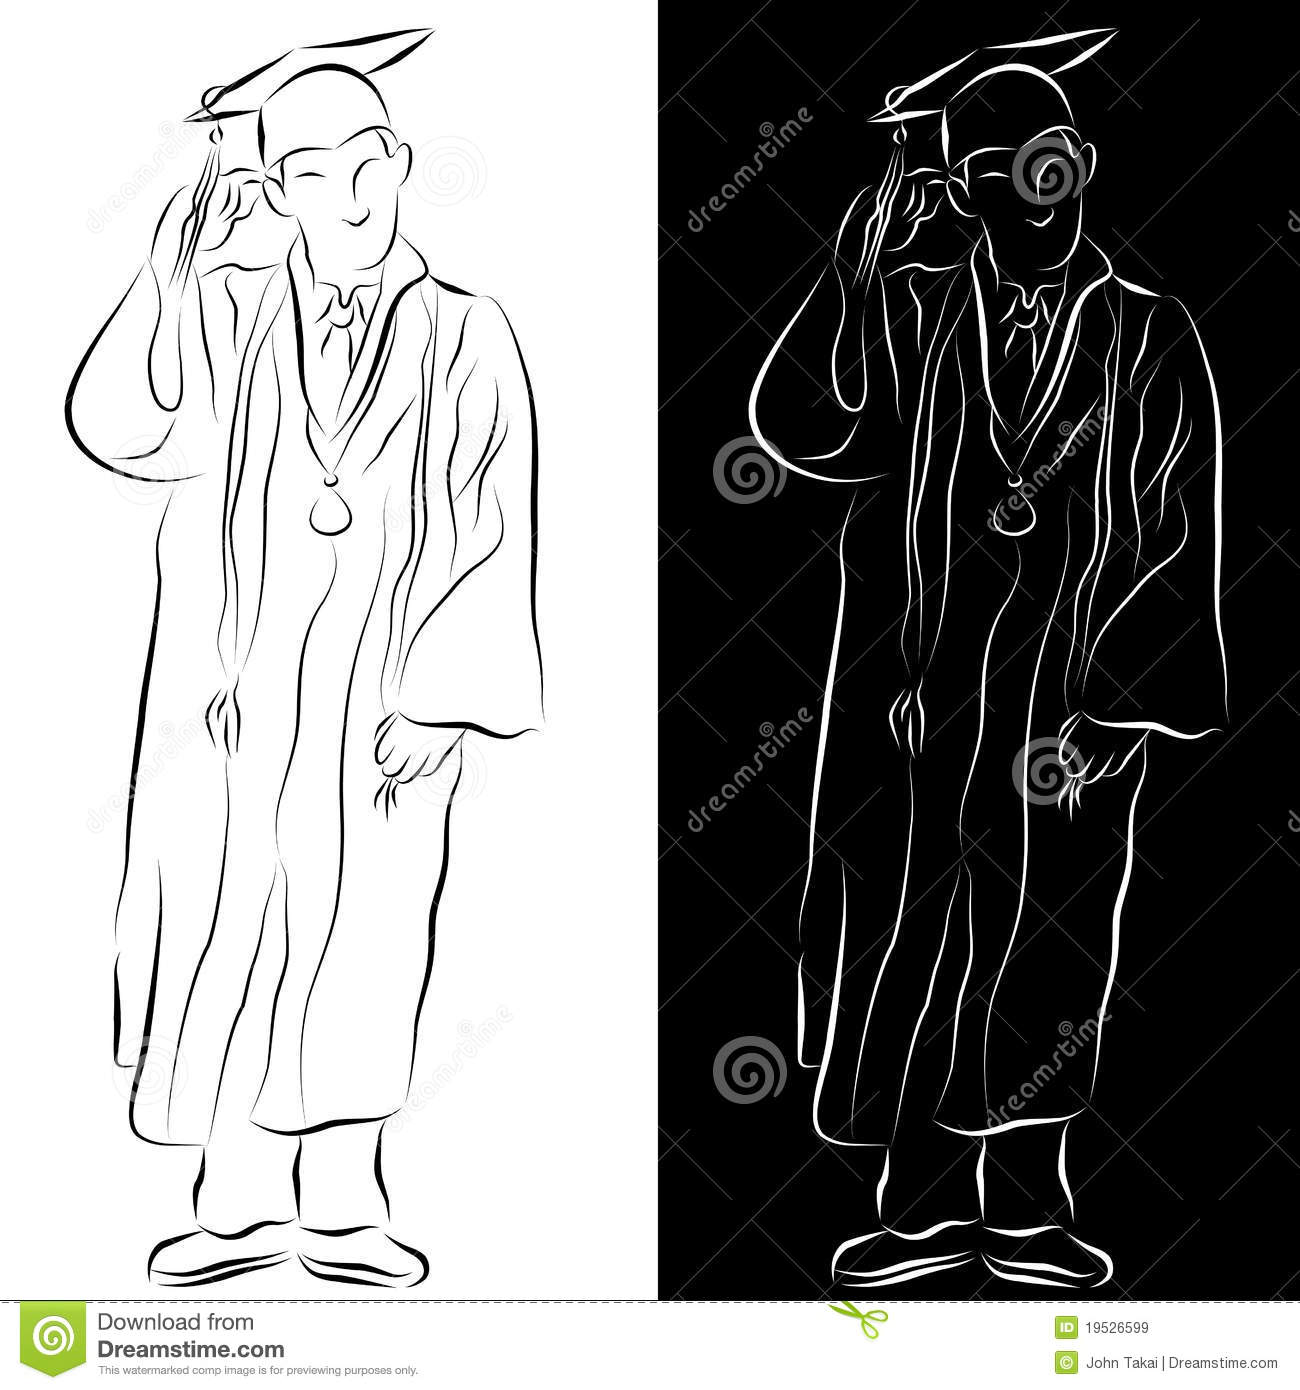 Pics photos how to draw a graduation hat -  Graduation Gown Line Drawing Royalty Free Stock Images